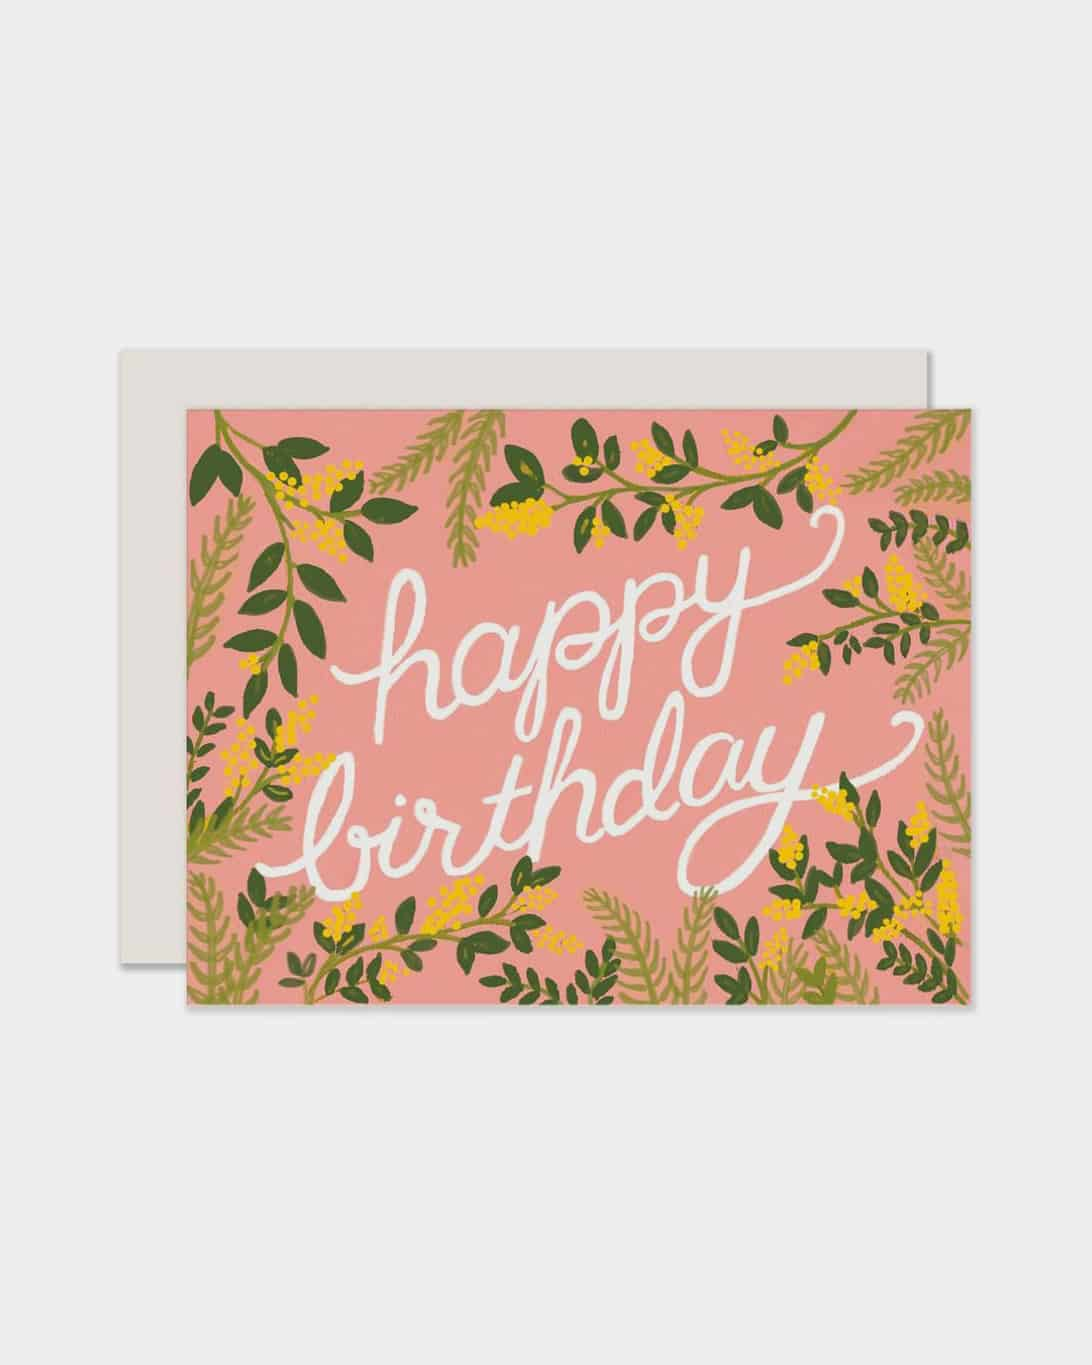 Pink card that says 'happy birthday'